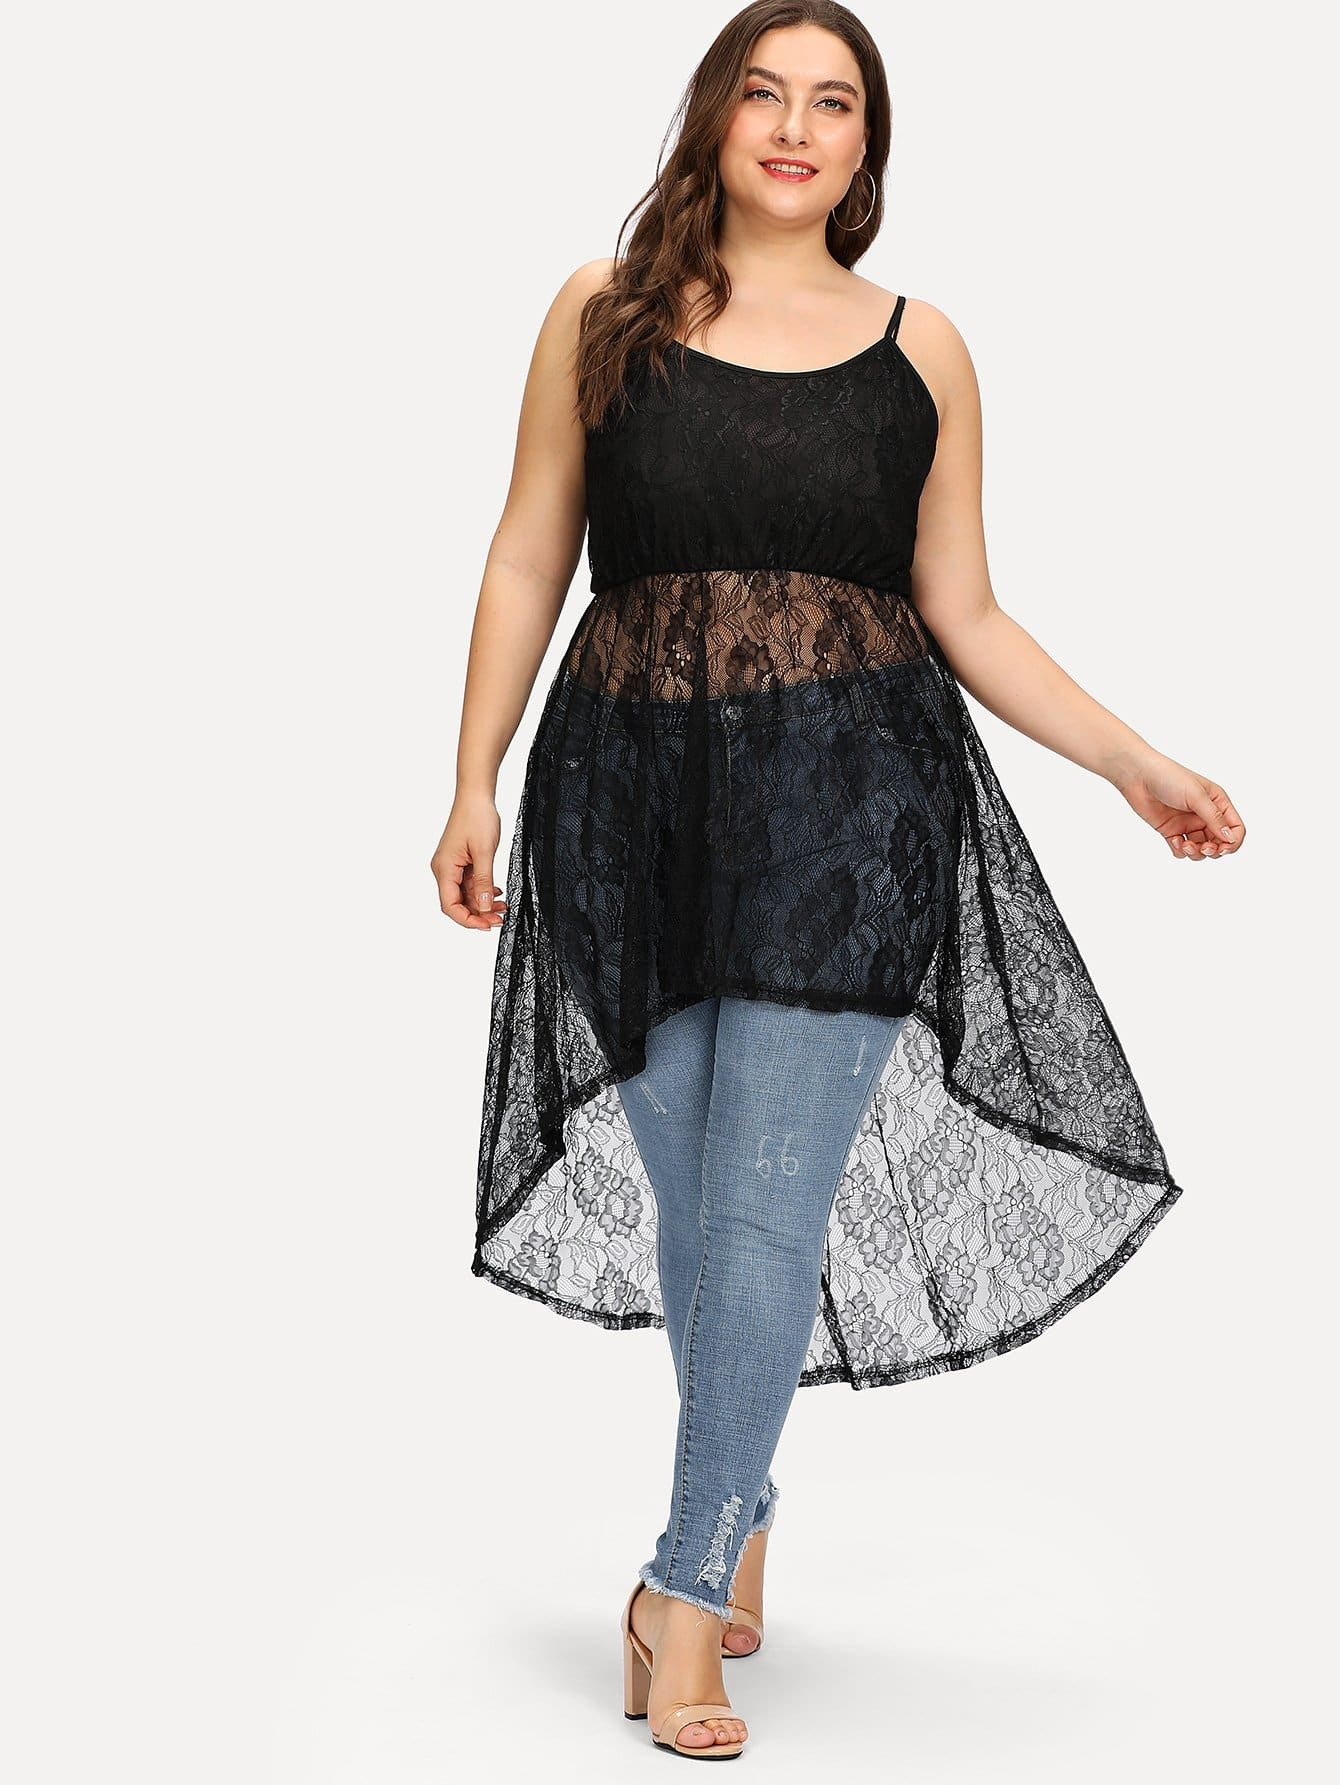 Lace Hollow Out Cami Top crochet lace hollow out cami top